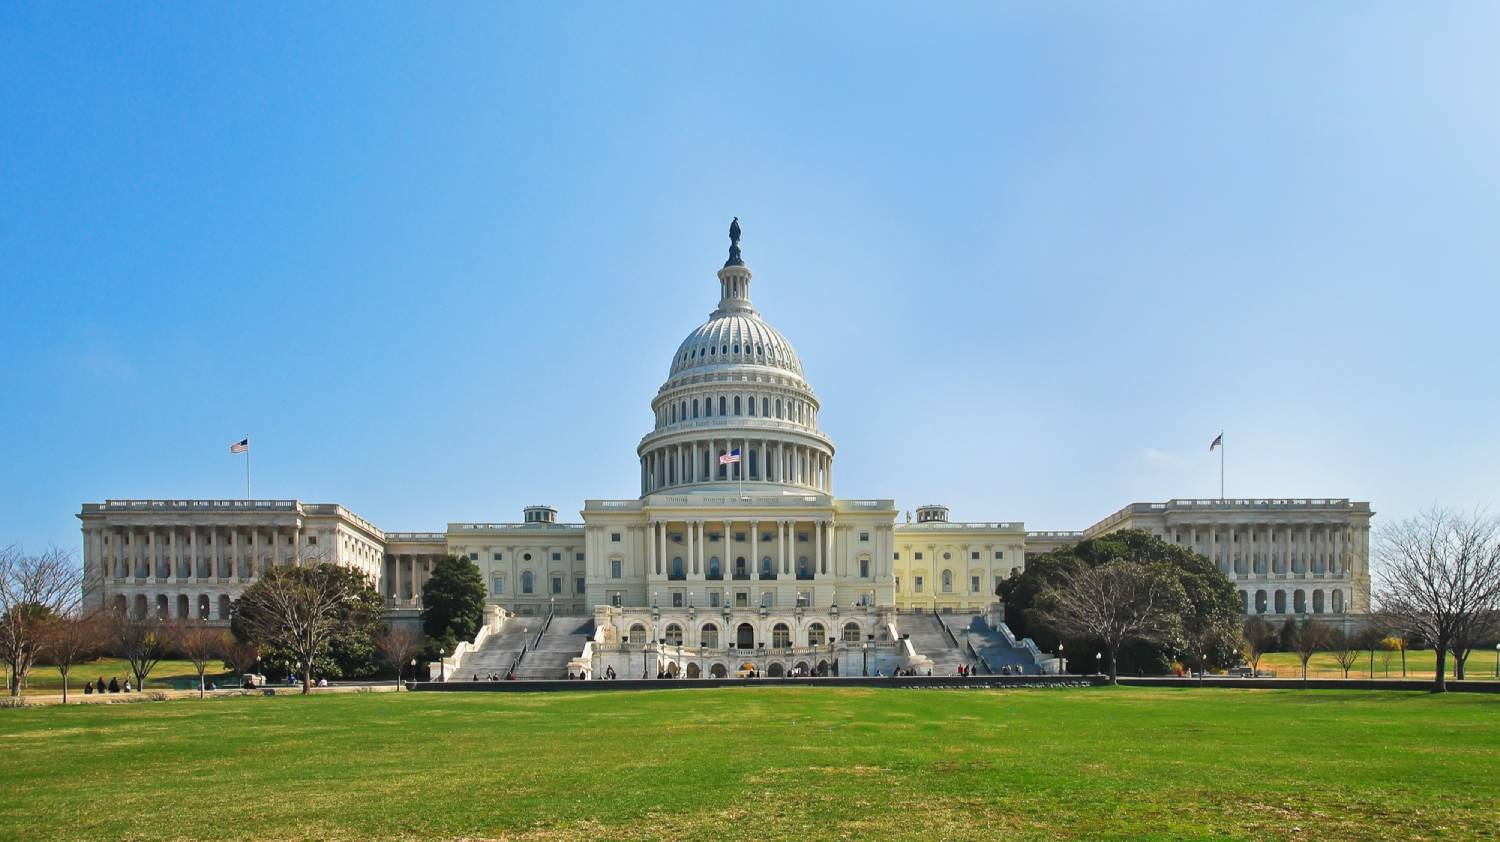 Capitol Hill - Things To Do In Washington, D.C.